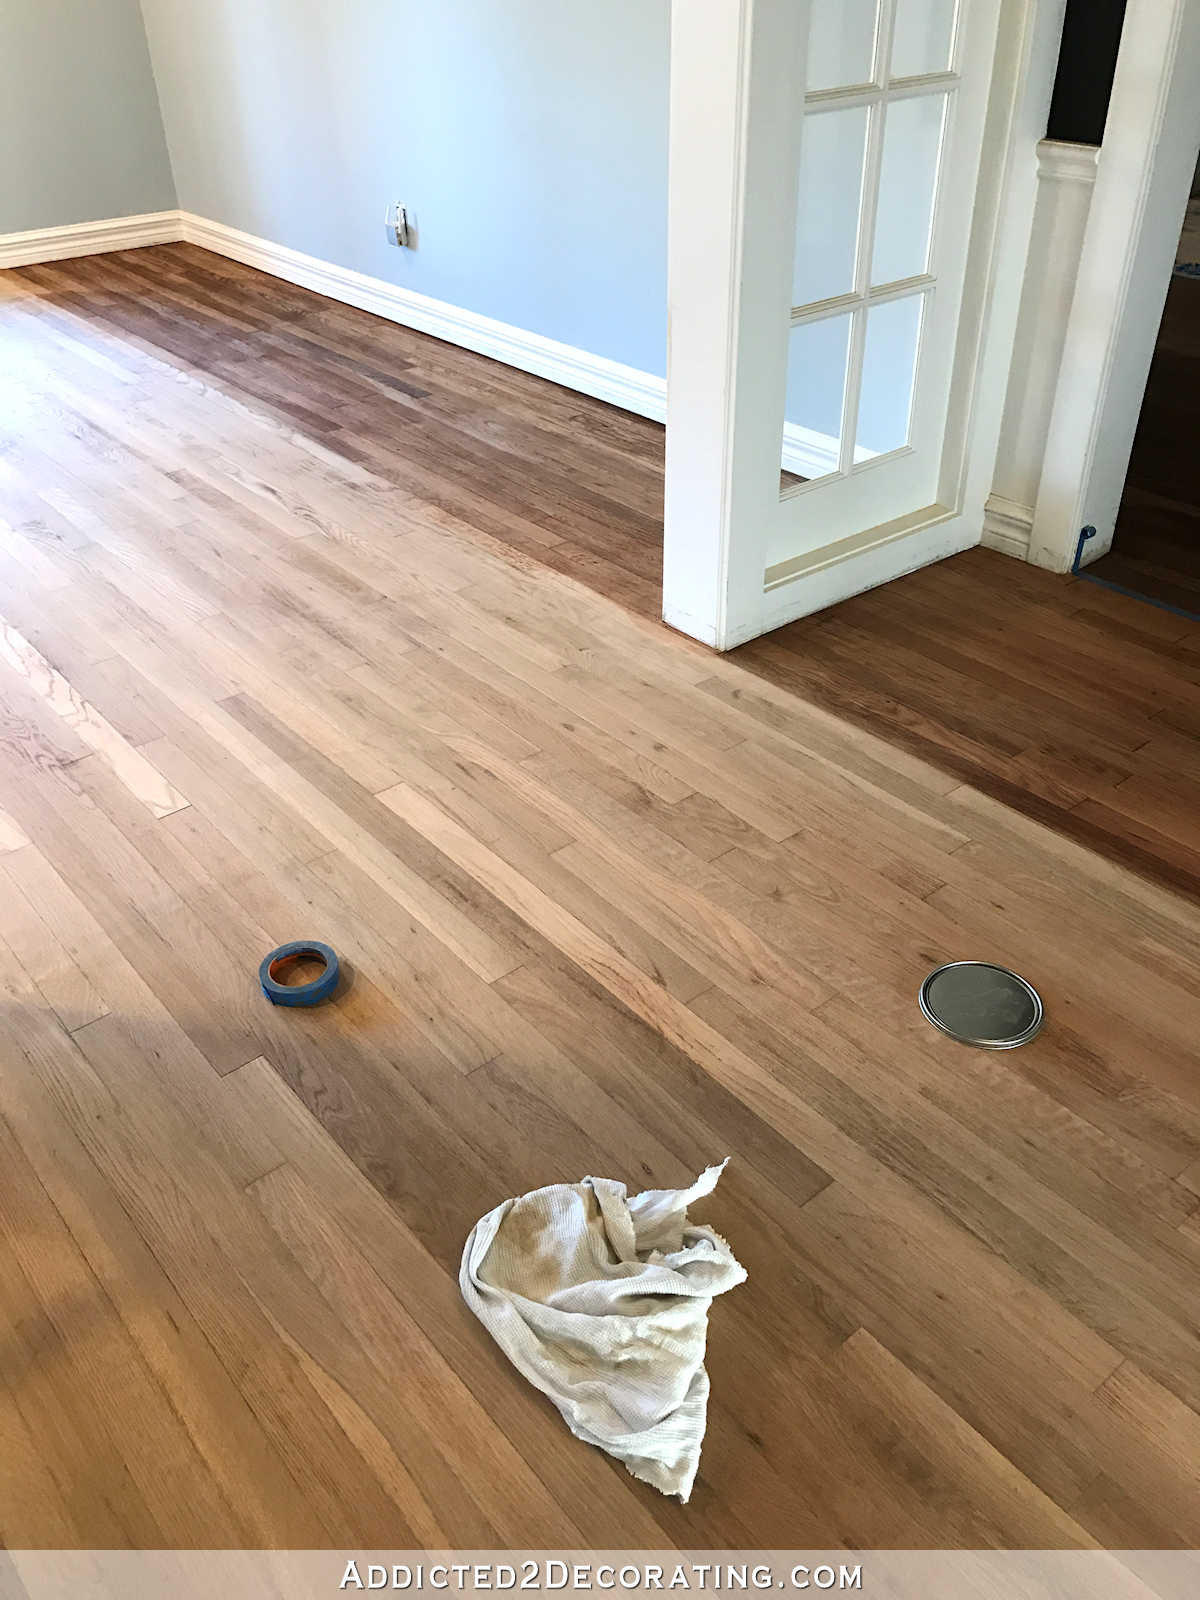 14 Ideal Trends In Hardwood Flooring 2015 2021 free download trends in hardwood flooring 2015 of adventures in staining my red oak hardwood floors products process intended for staining red oak hardwood floors 3 entryway and music room